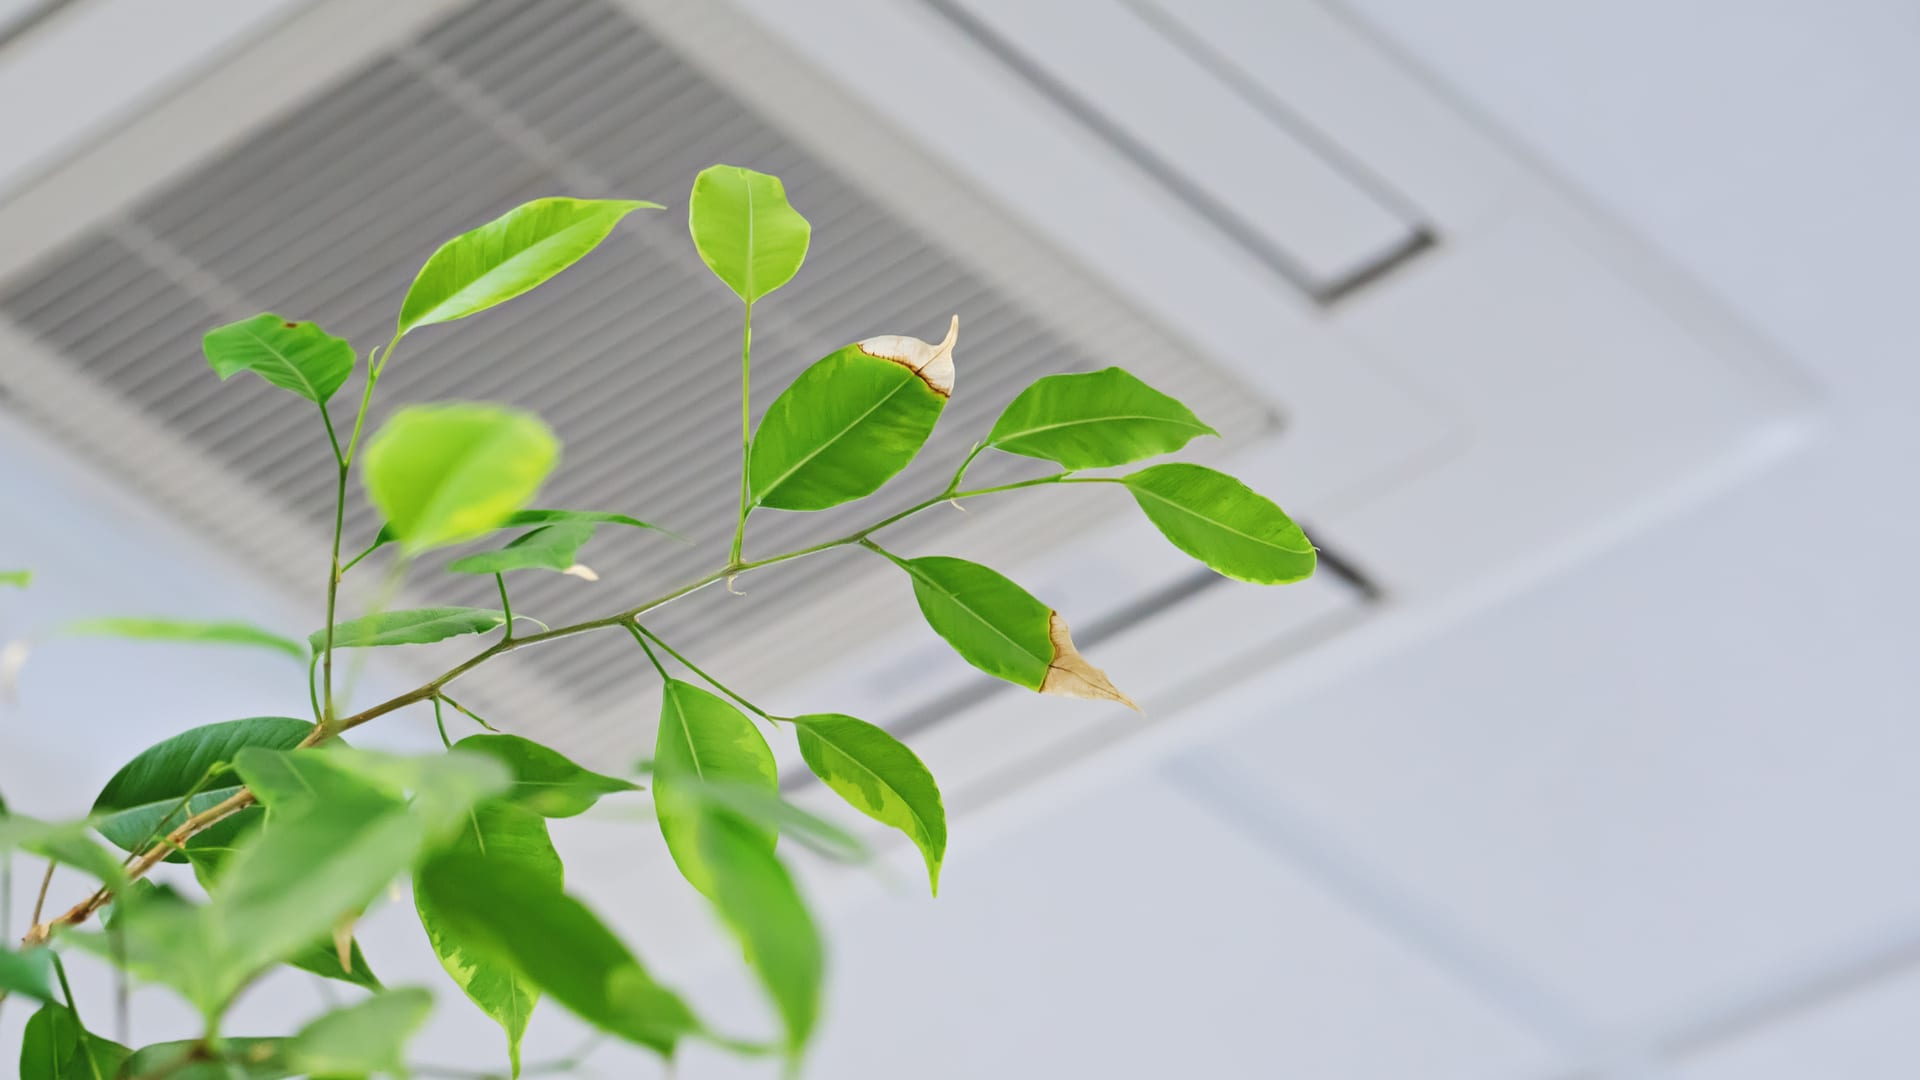 a plant in front of an air vent